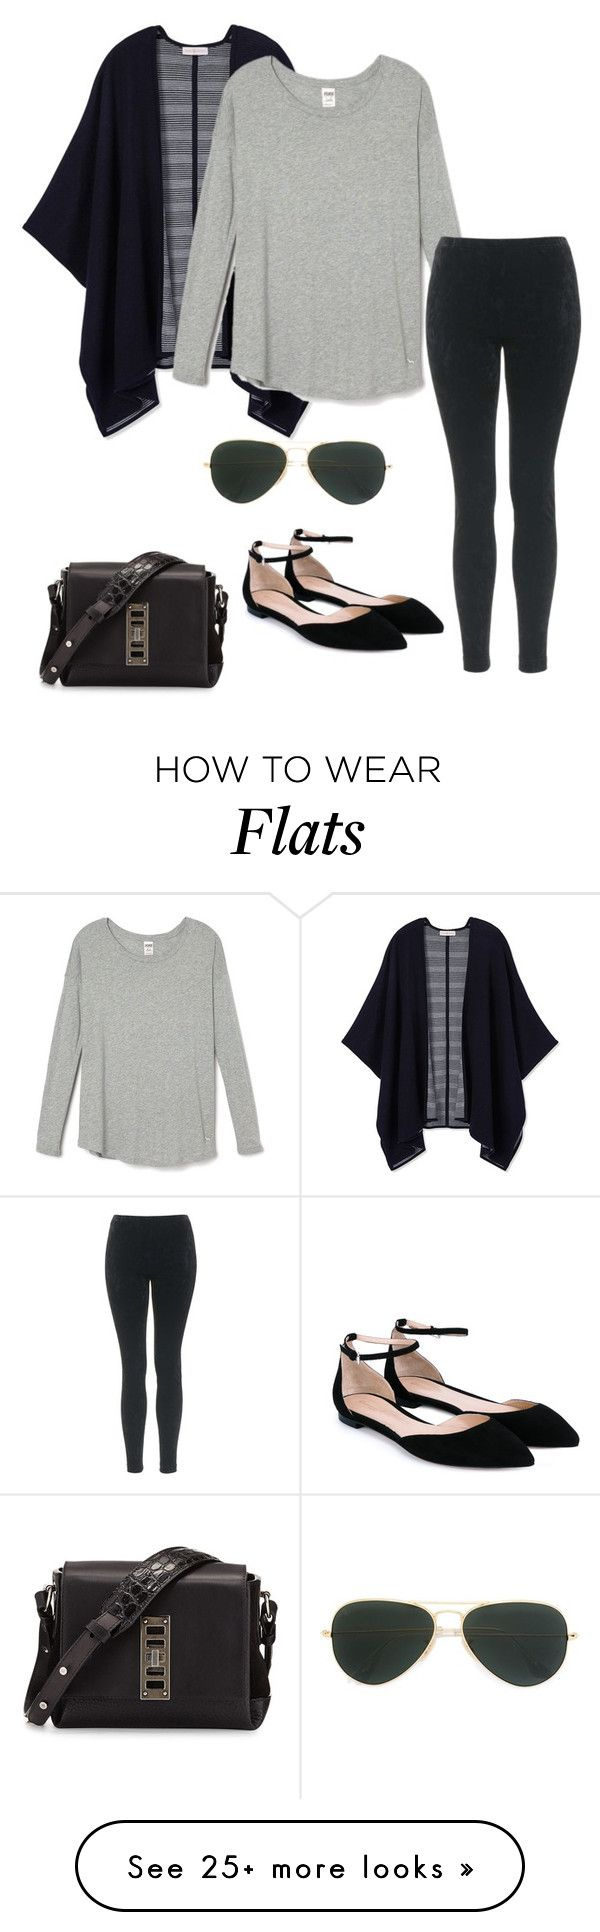 """""""black and gray"""" by penguin-alert on Polyvore featuring Tory Burch, Topshop, Ray-Ban, Proenza Schouler and Gianvito Rossi"""